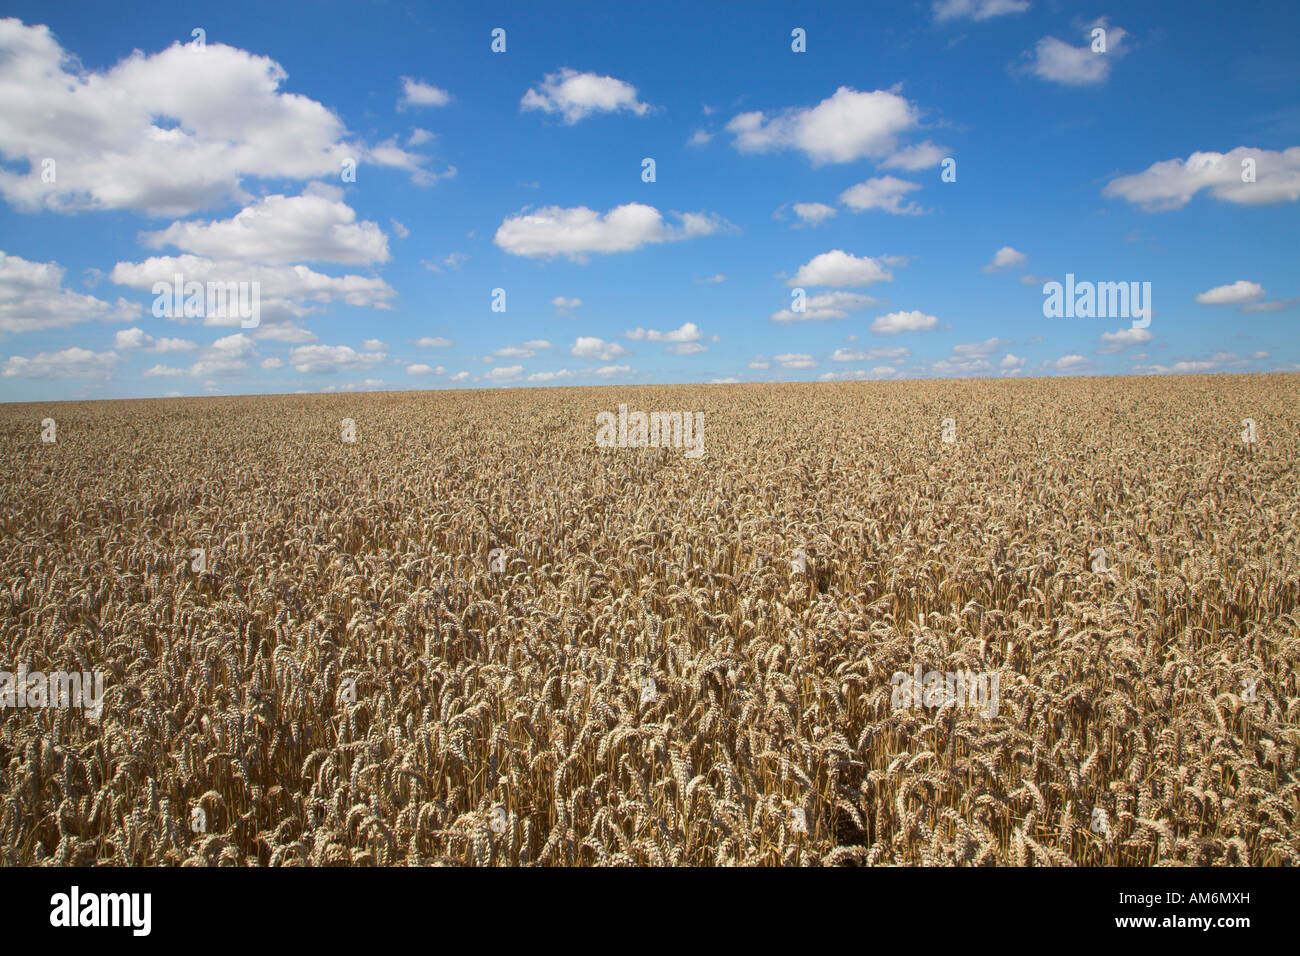 Wheat field in summer bright sunshine with blue sky and white fluffy cumulus clouds - Stock Image